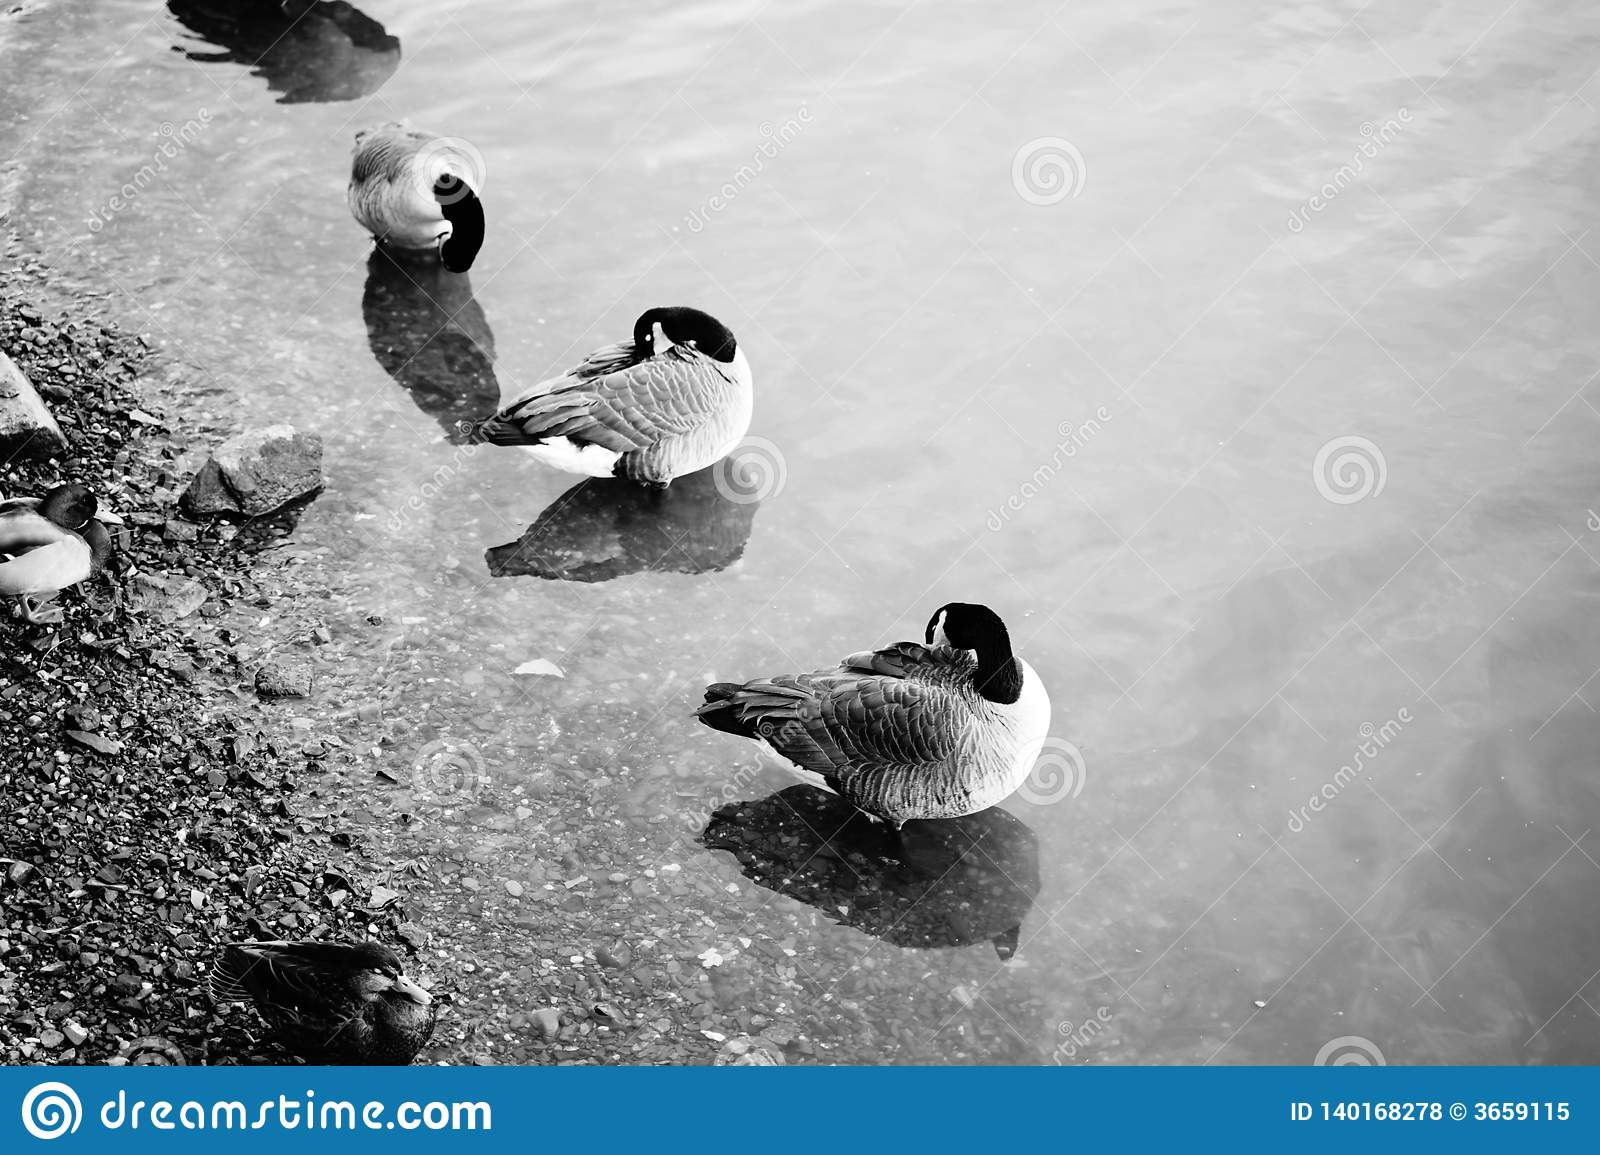 Group of birds sitting in water on the beach